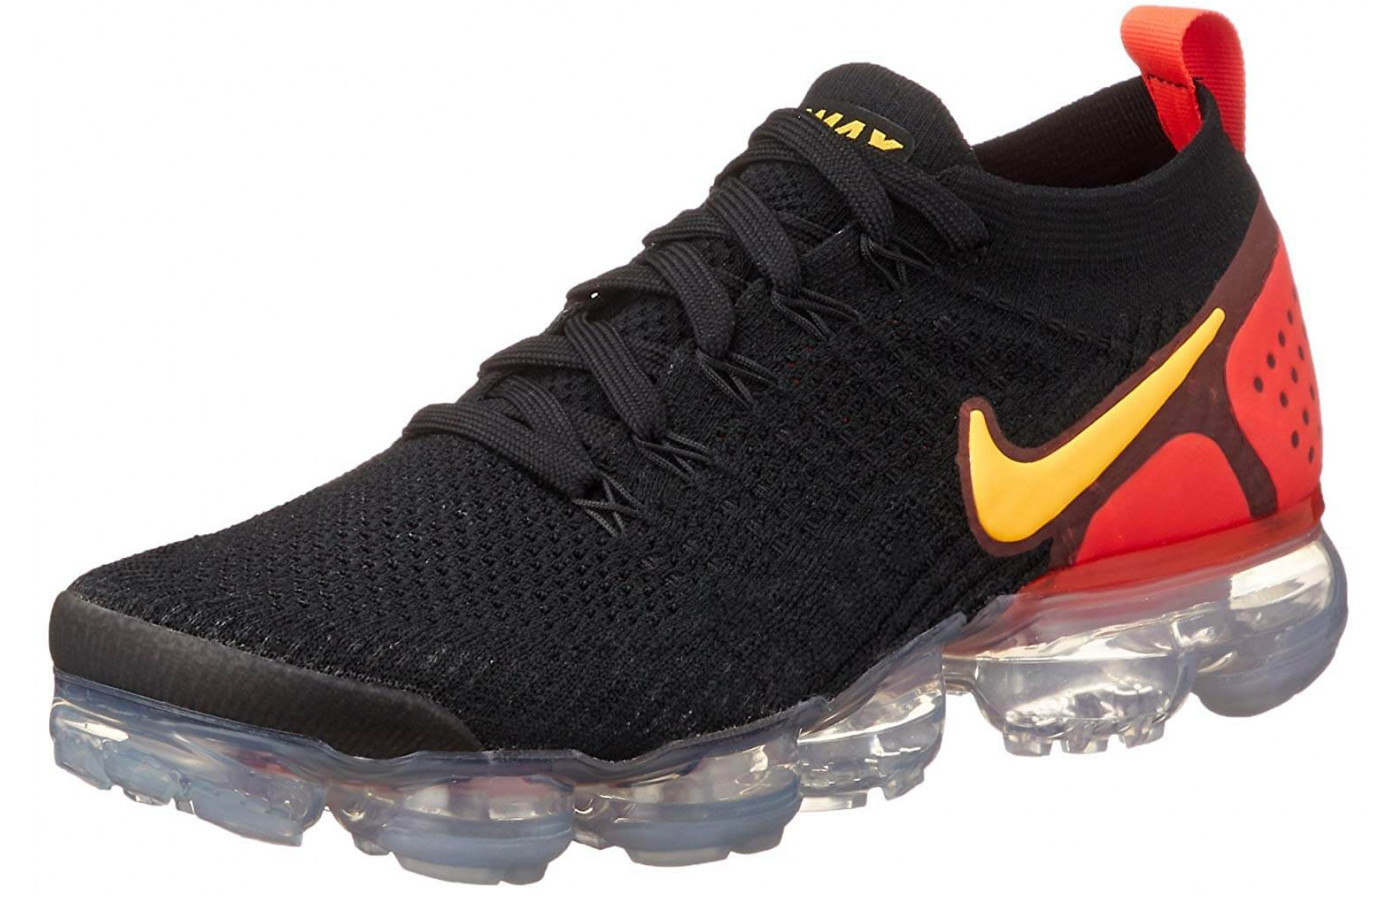 Nike Air VaporMax Flyknit 2 - To Buy or Not in Apr 2019  07f940358